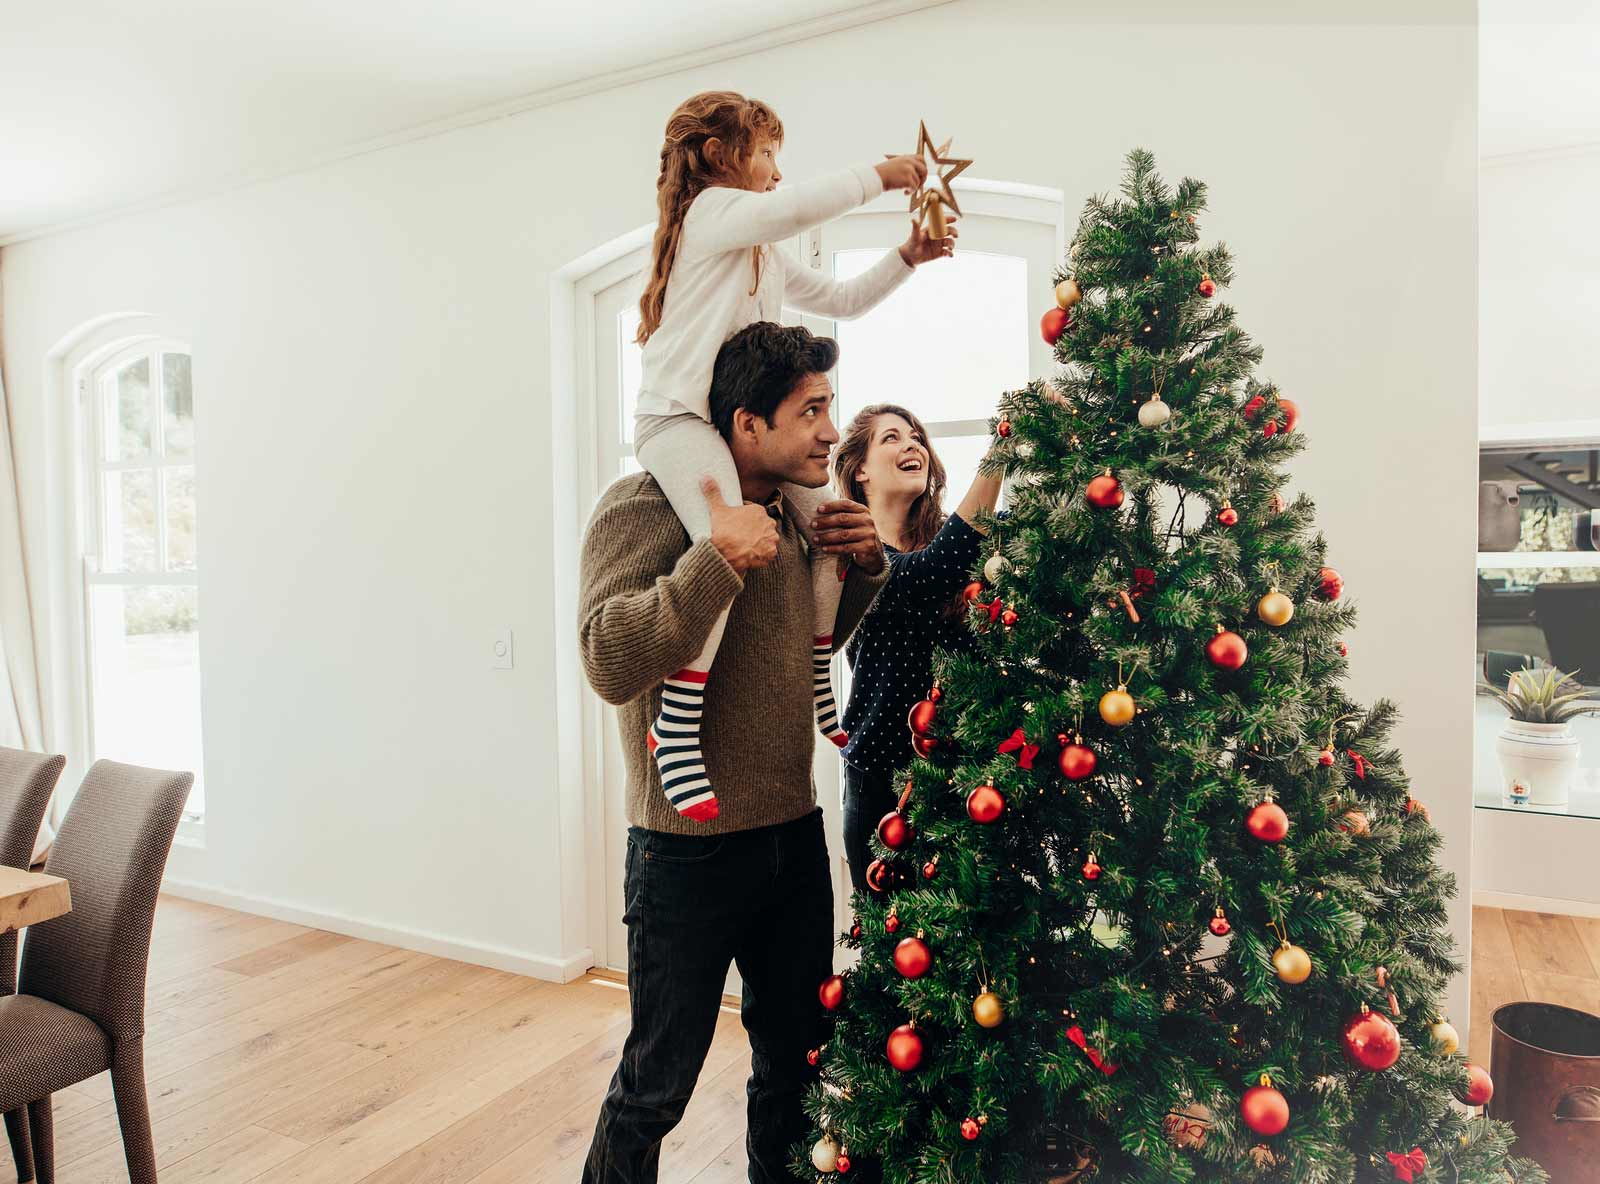 A family prepares their Christmas tree for the holidays.